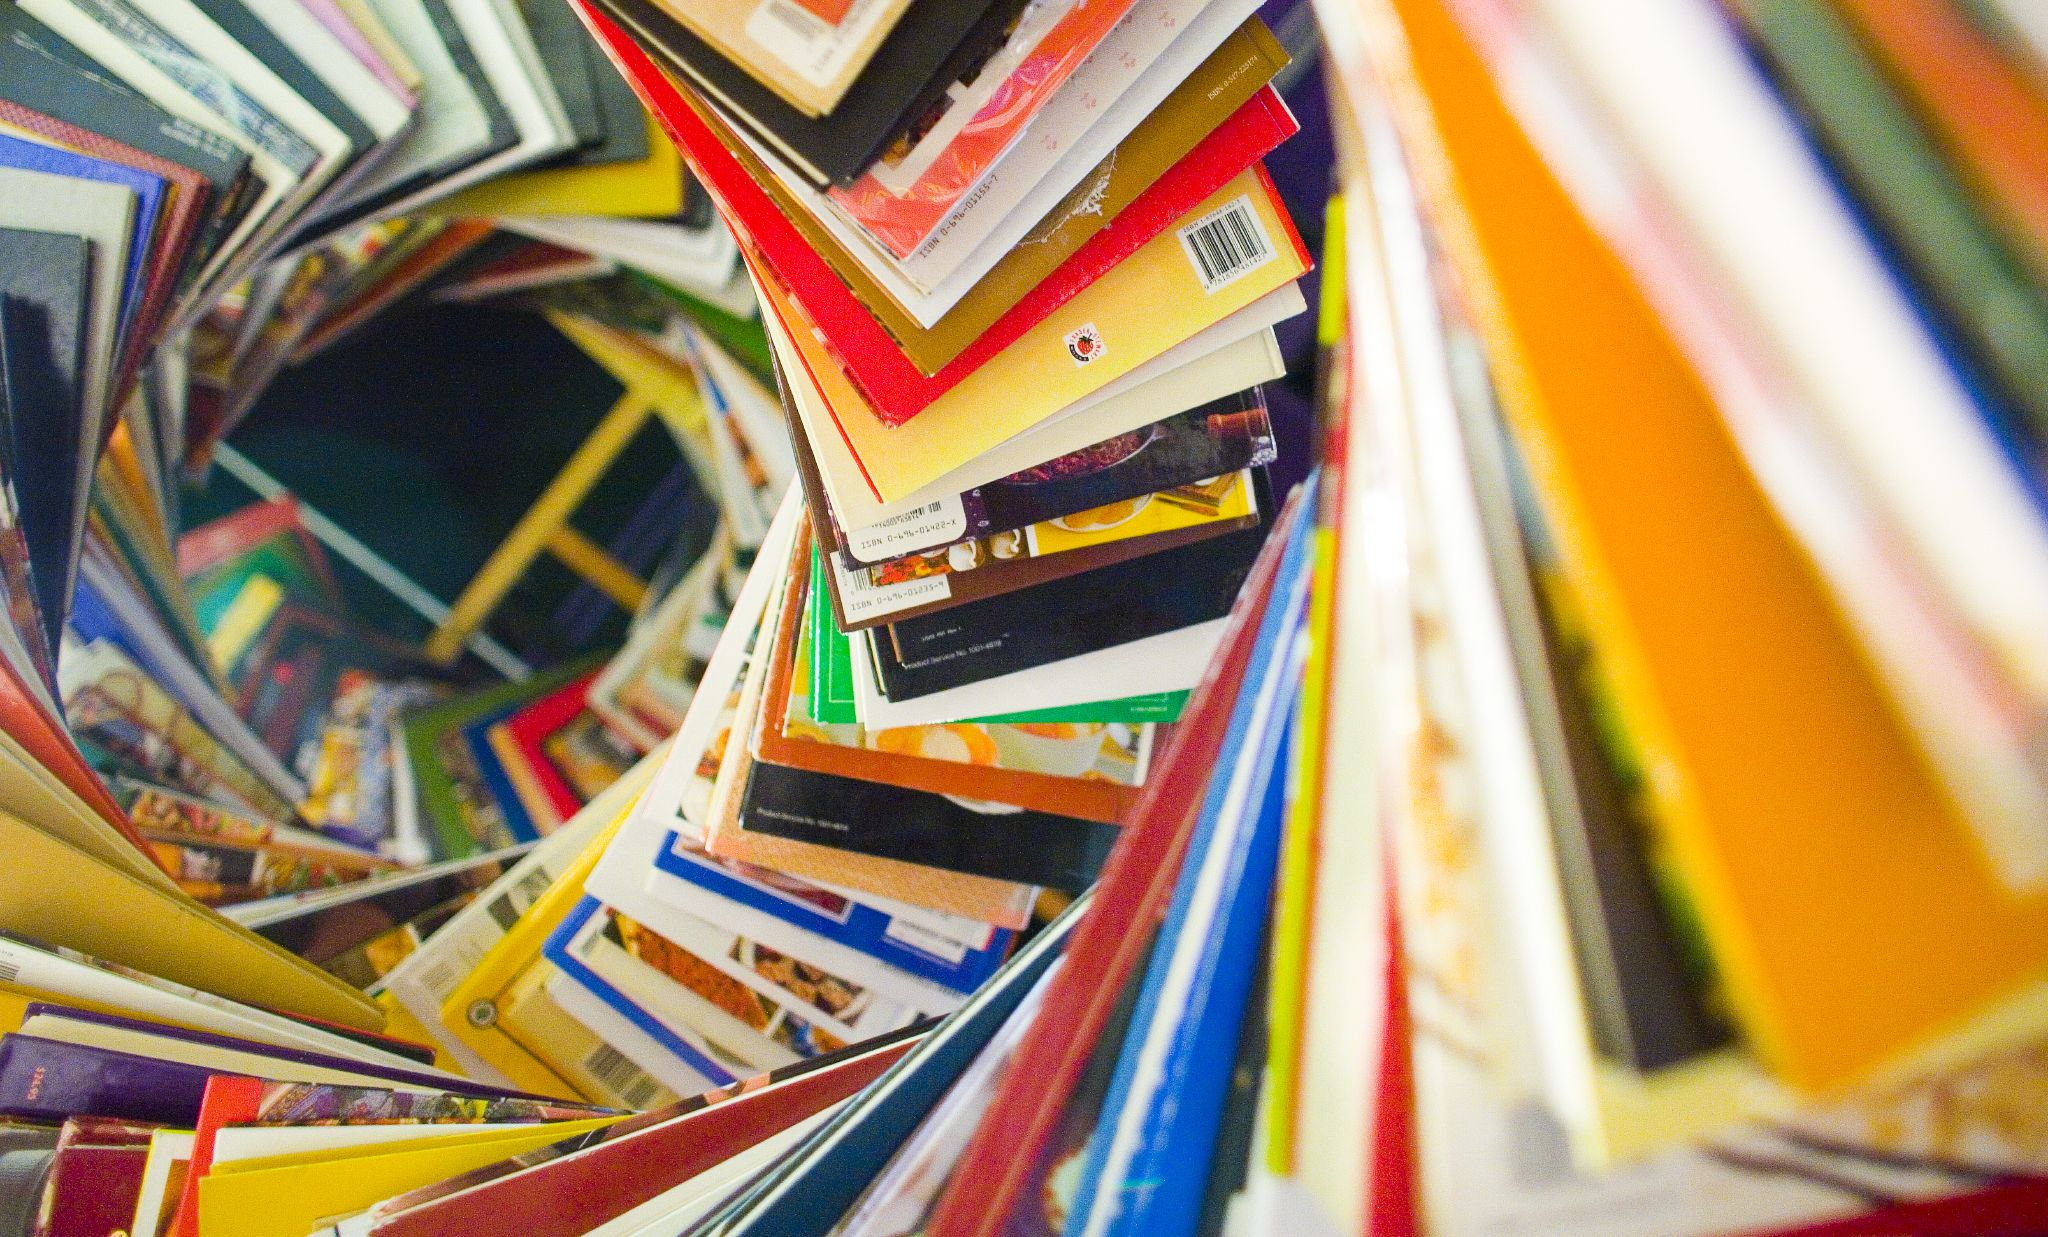 Spiral of books by Thomas Hawk CC BY NC